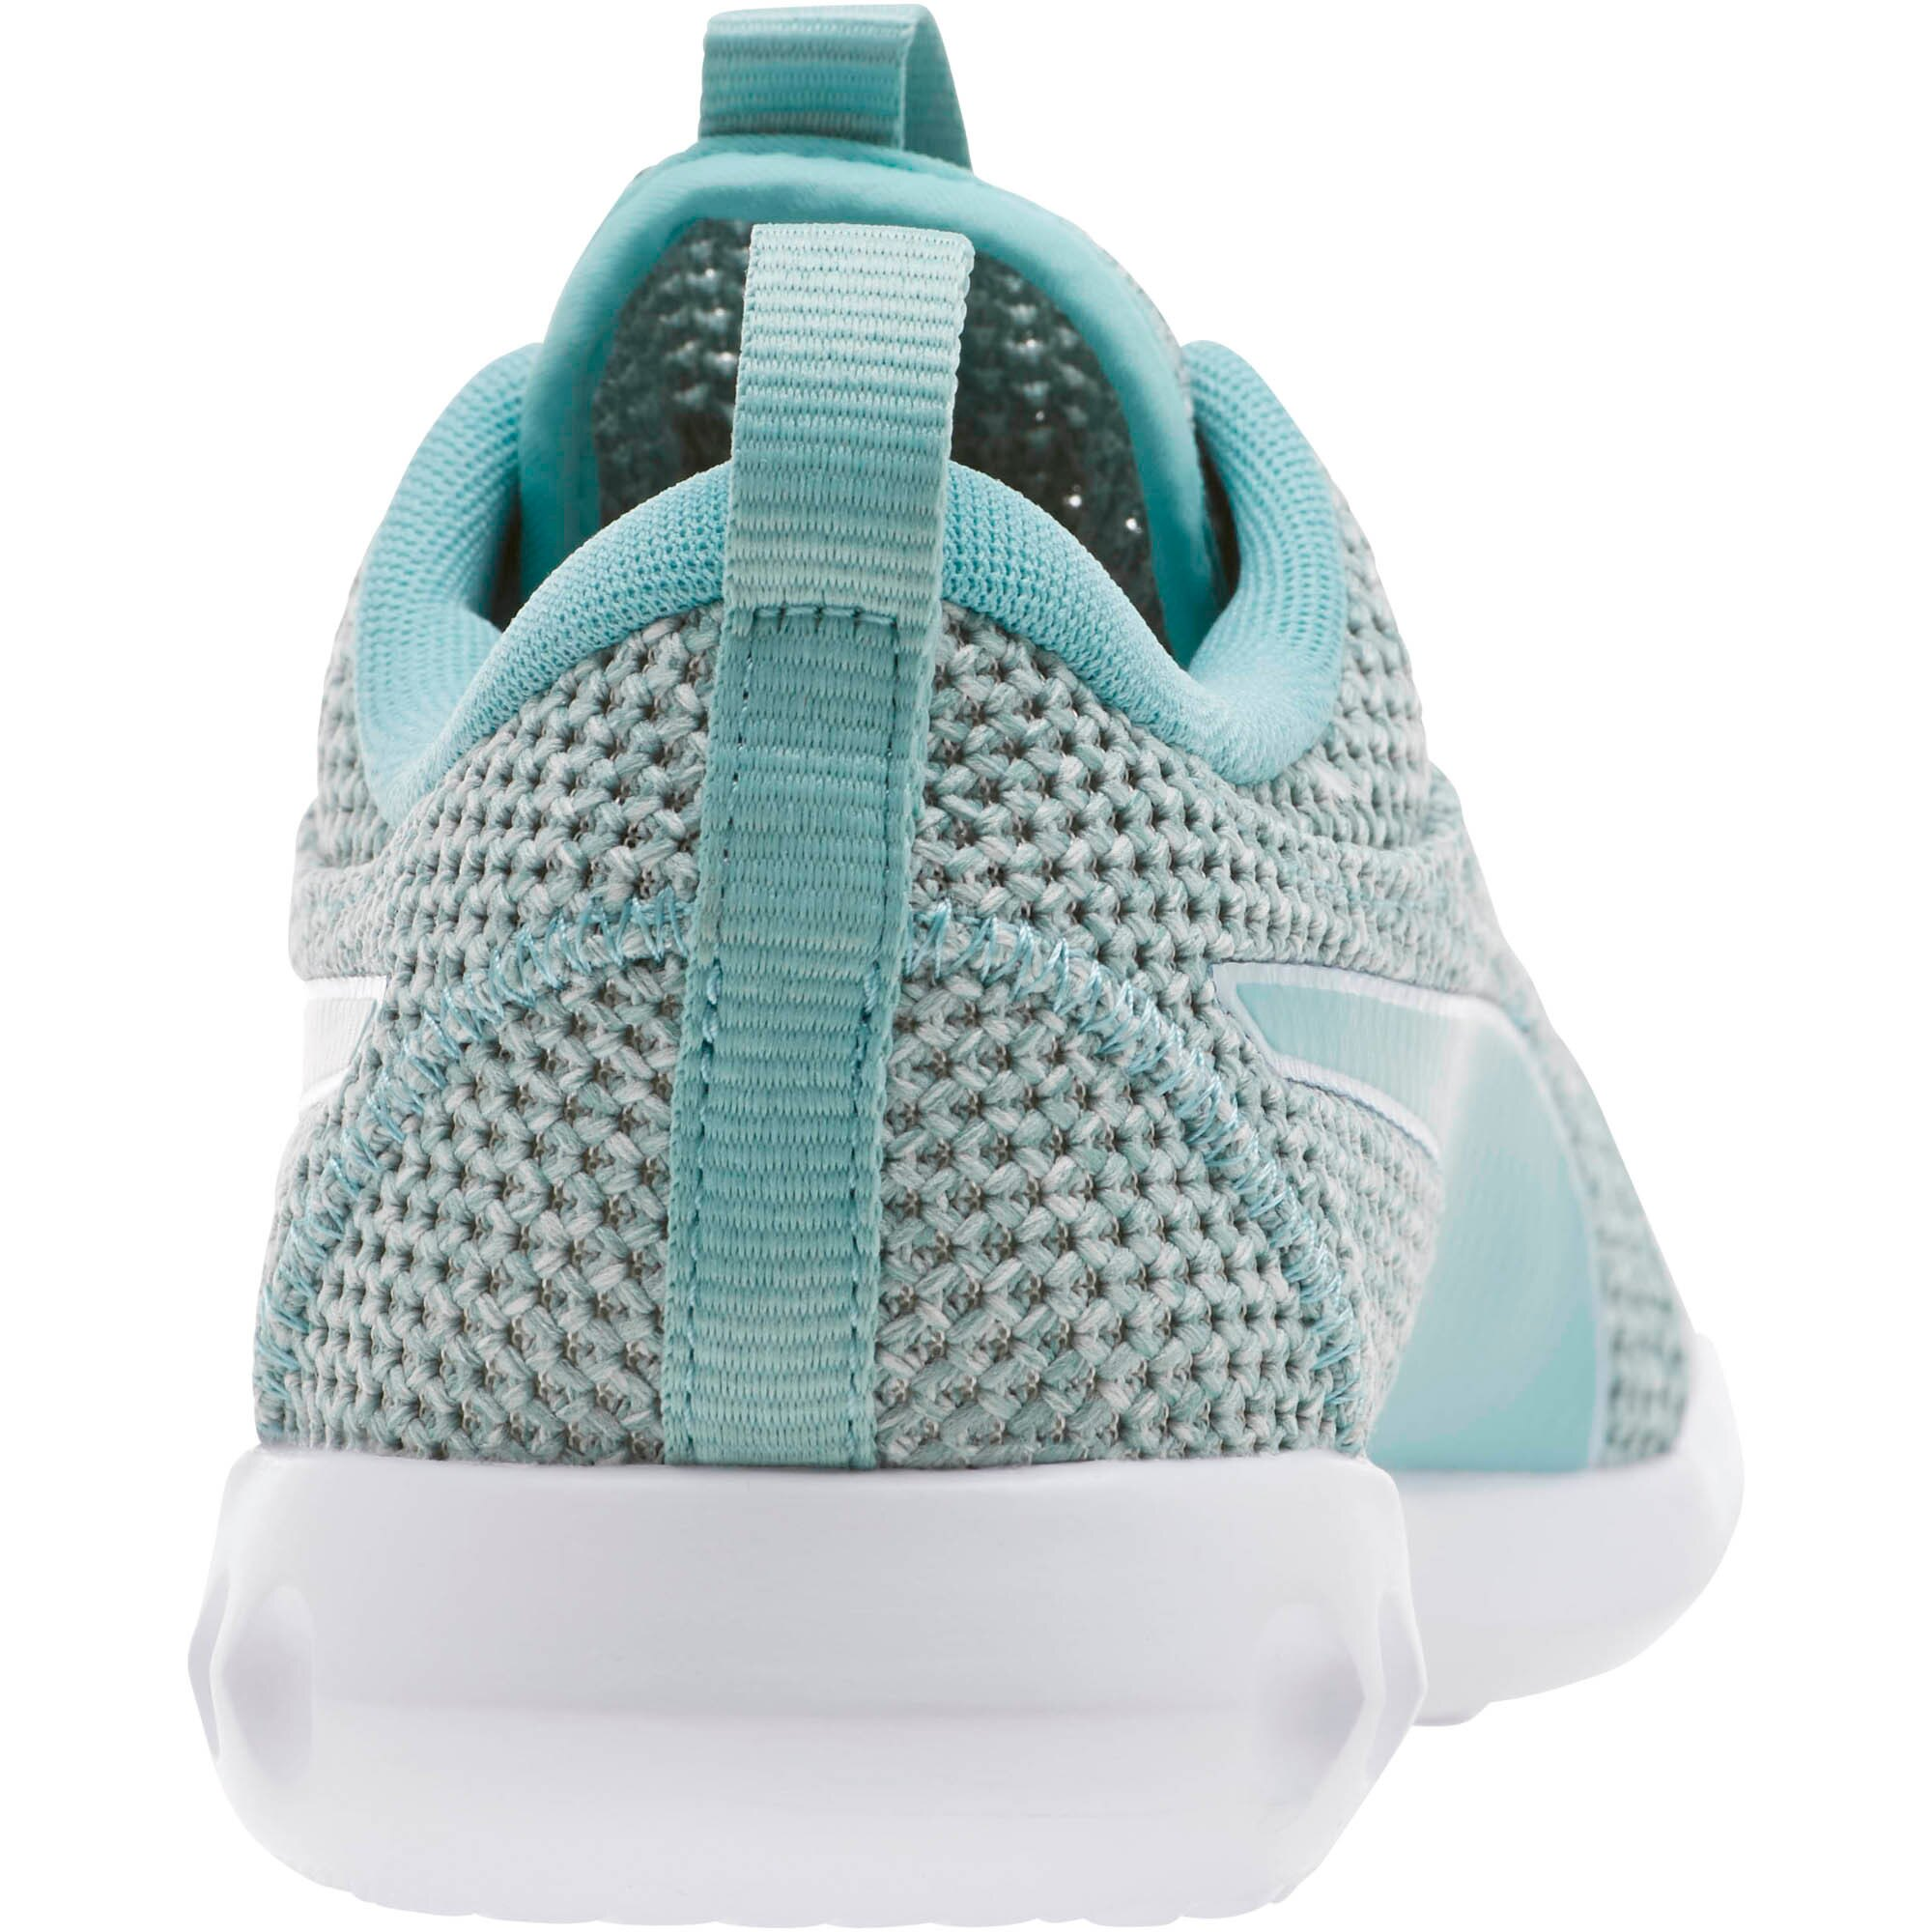 Official Puma Store  PUMA Carson 2 Nature Knit Women s Running Shoes ... 646c4f612